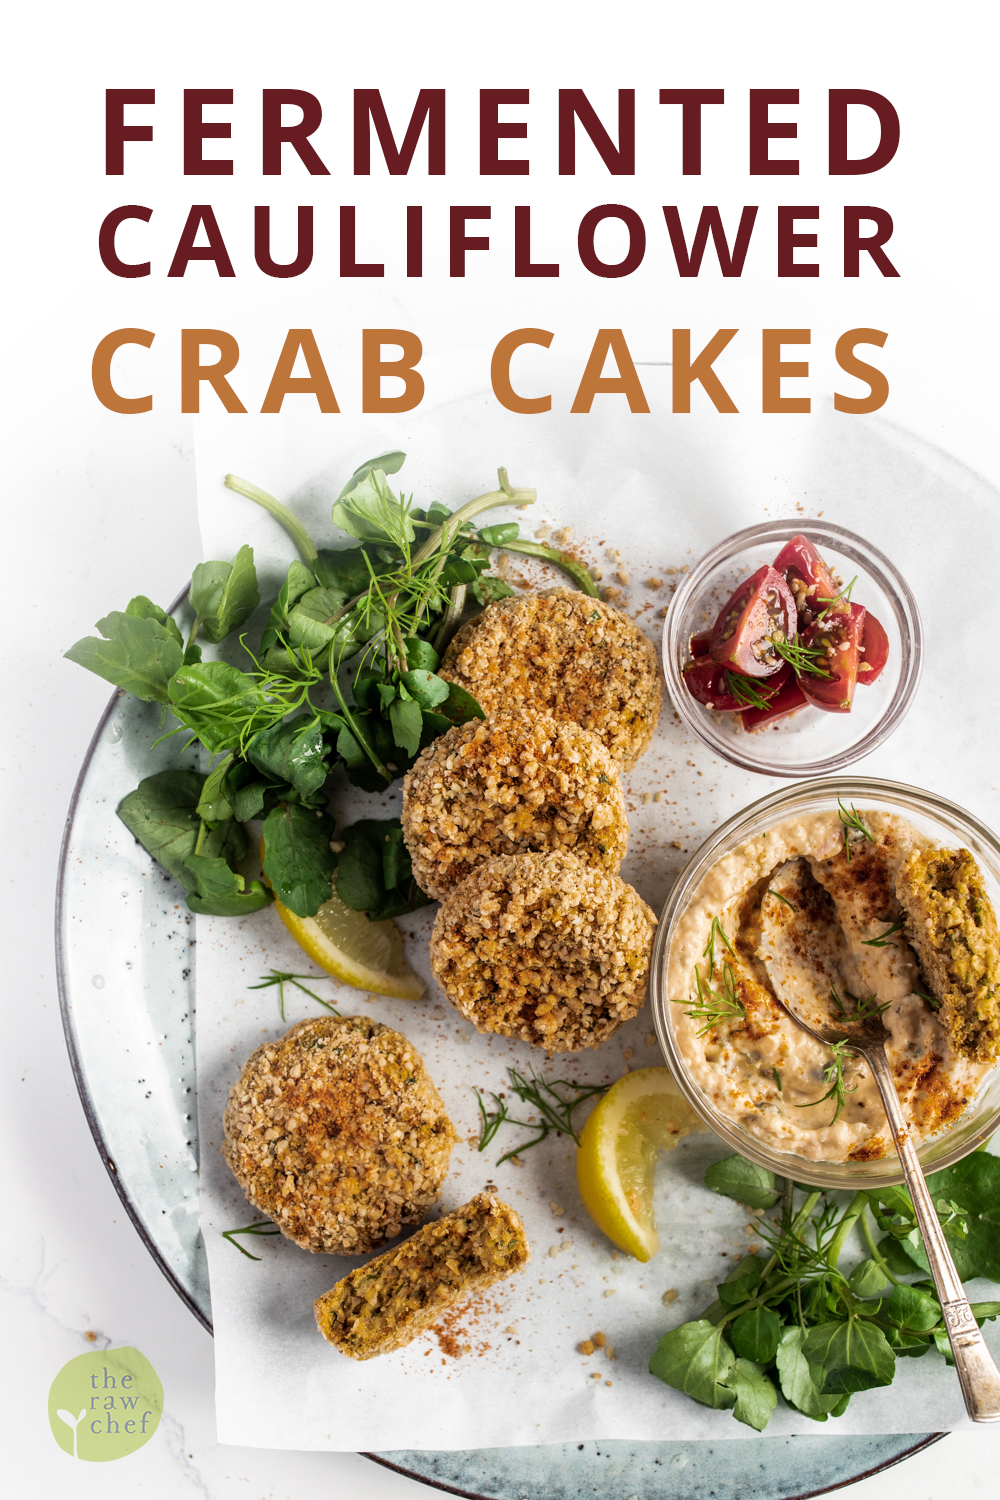 Fermented cauliflower crab cakes with horseradish dipping sauce with watercress on a white background